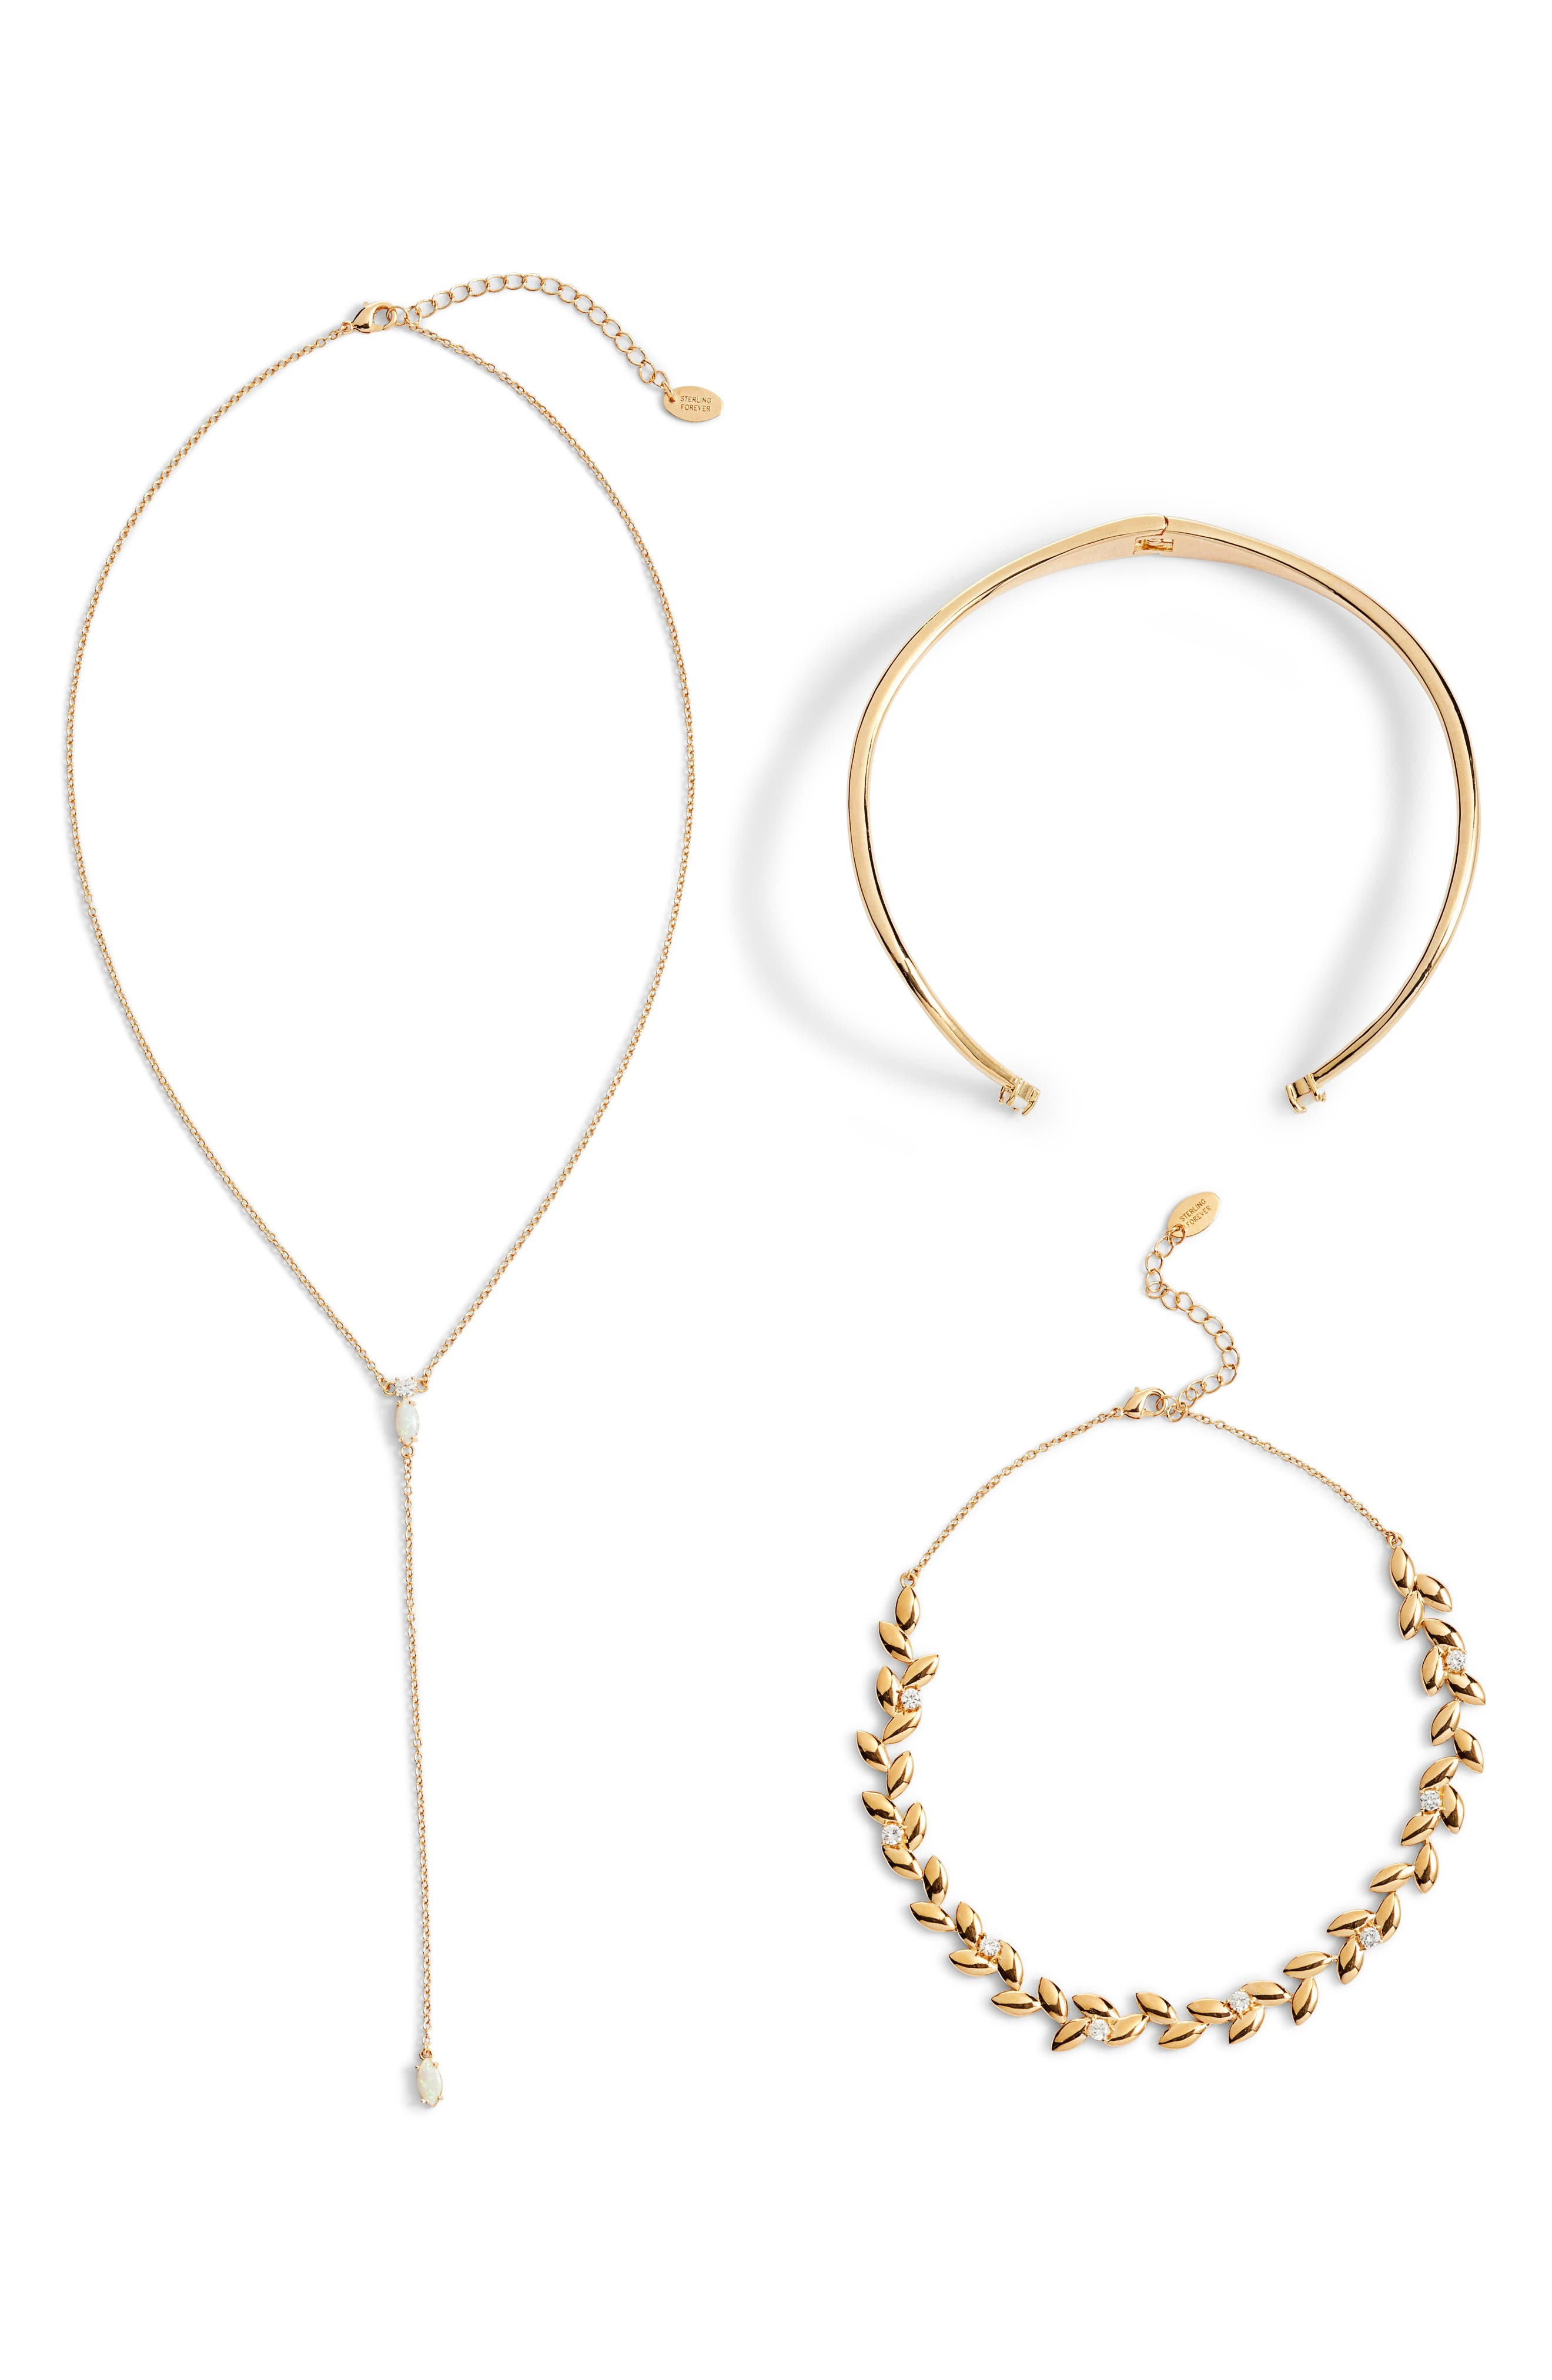 Hearts on Fire Set of 2 Chokers & Lariat Necklace,                         Main,                         color, GOLD